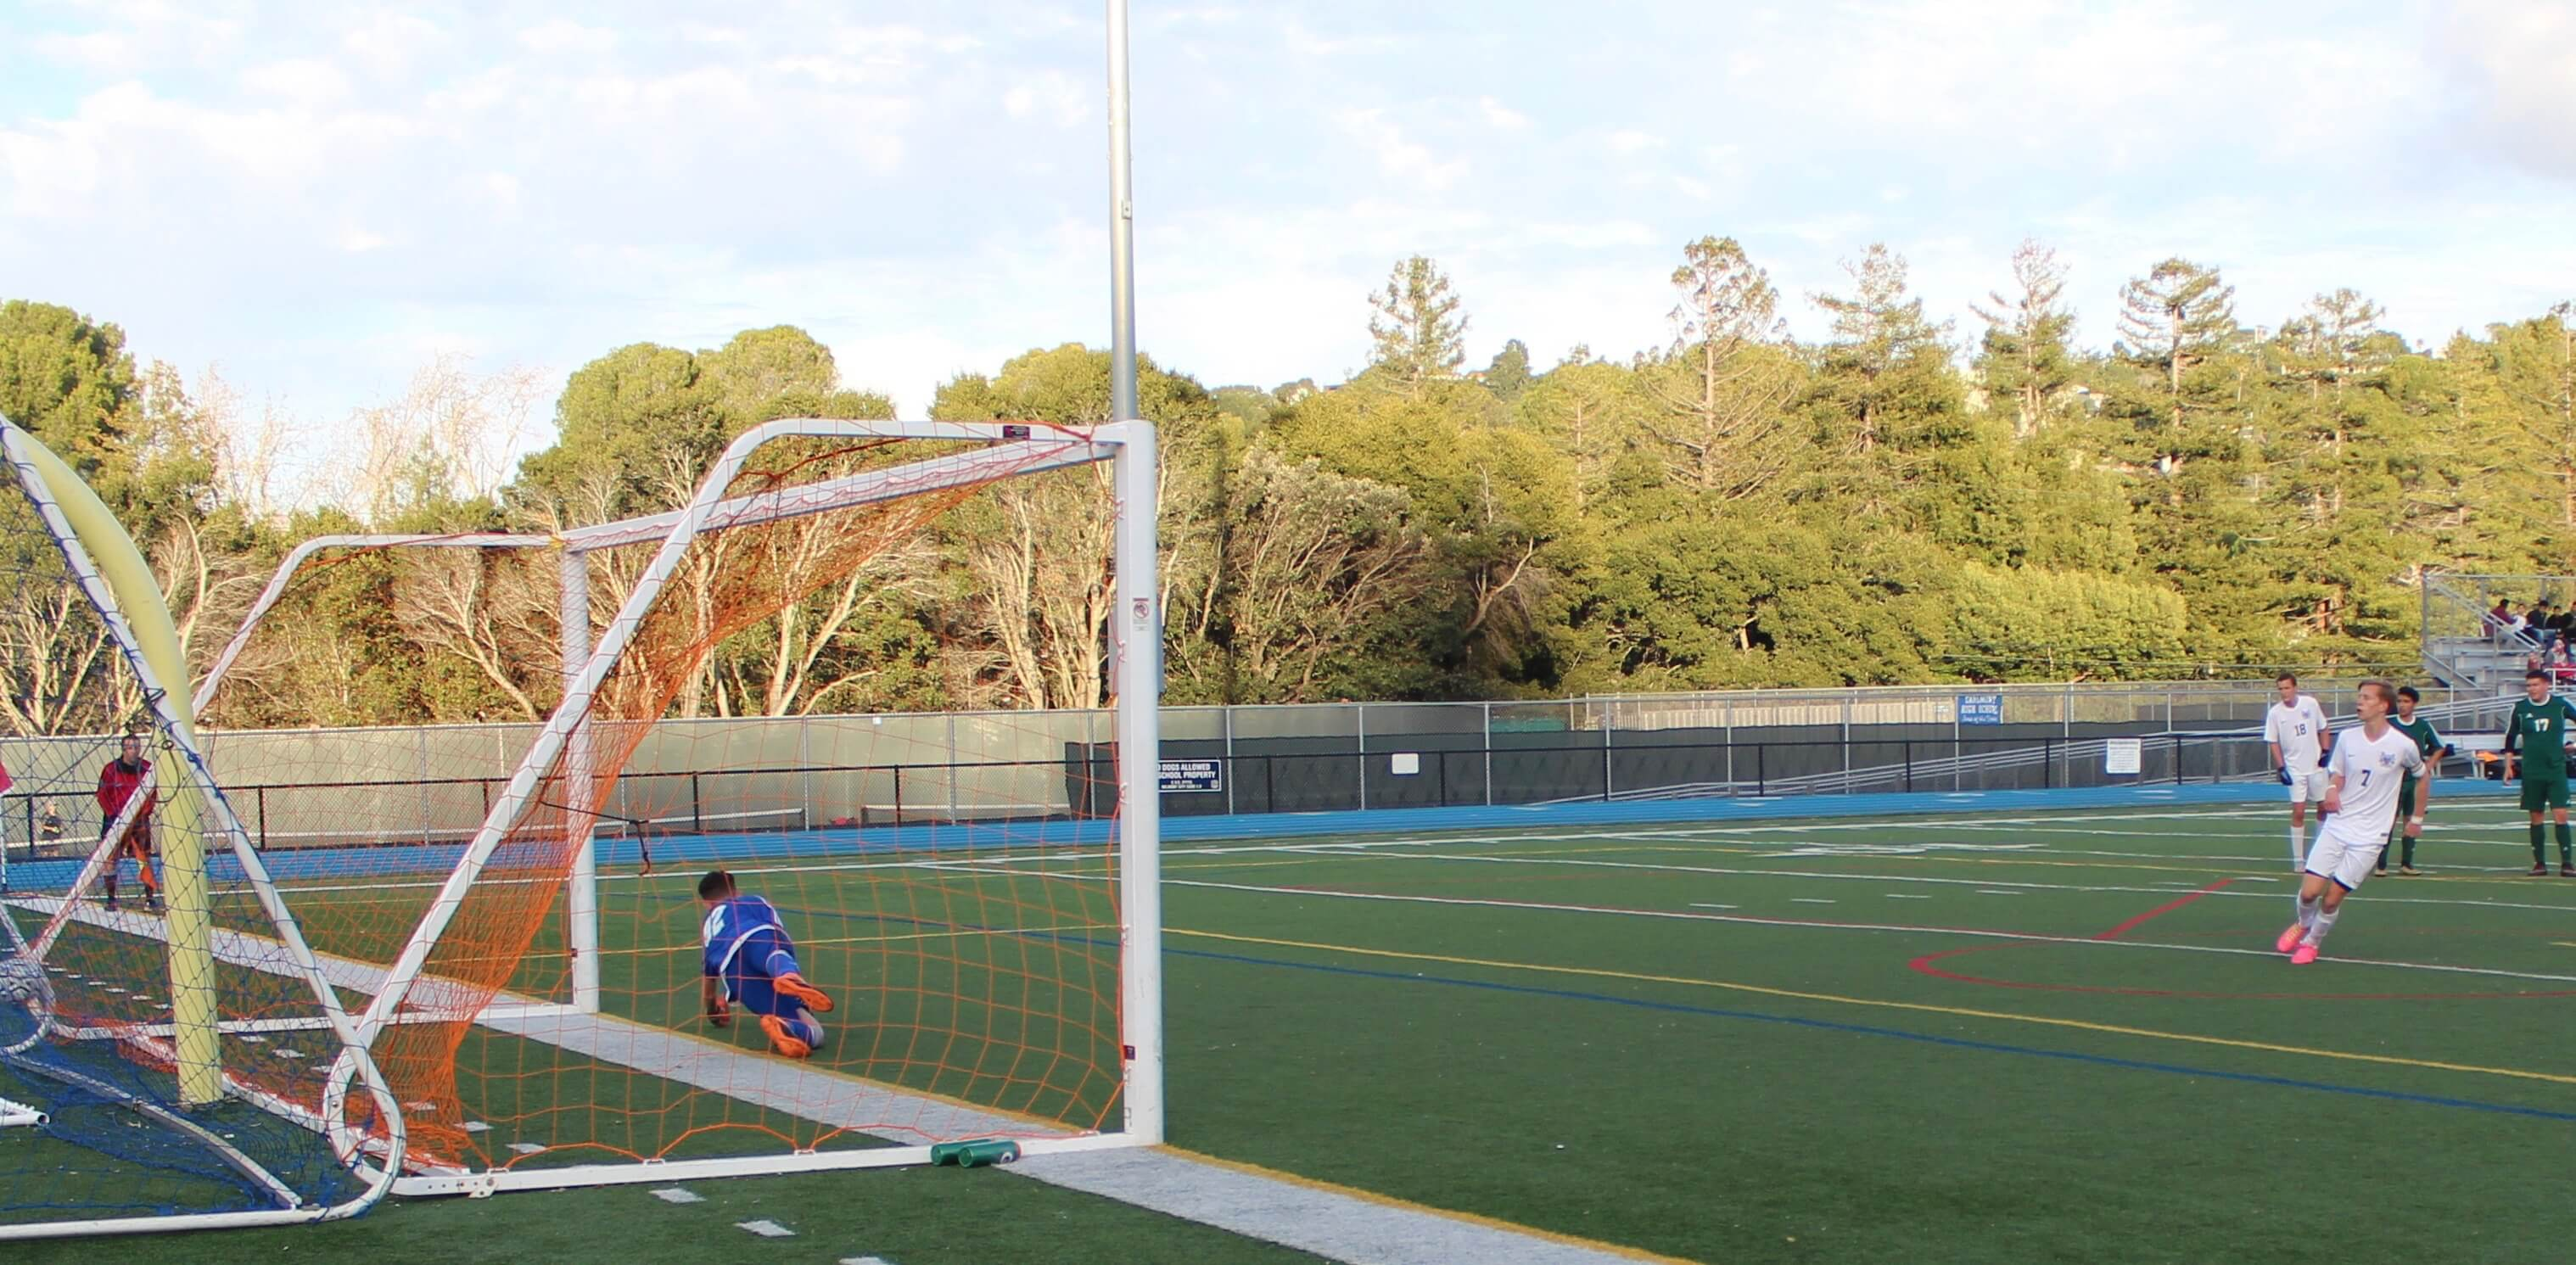 Brett Fitzpatrick scores a penalty kick to put the Scots further ahead.